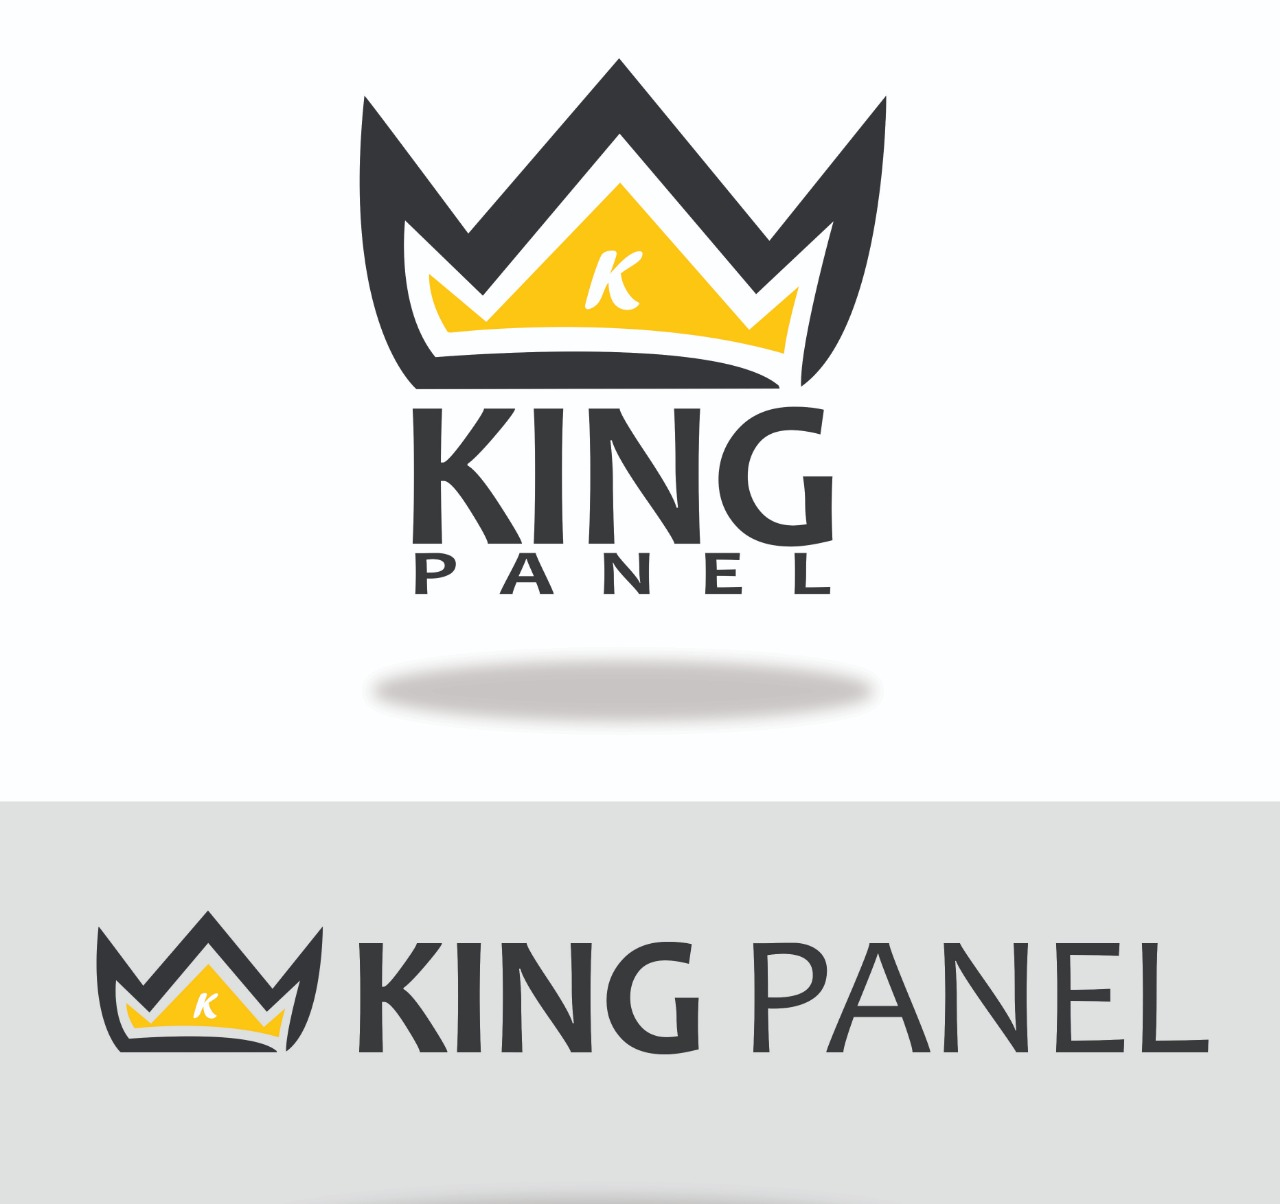 The King Panel